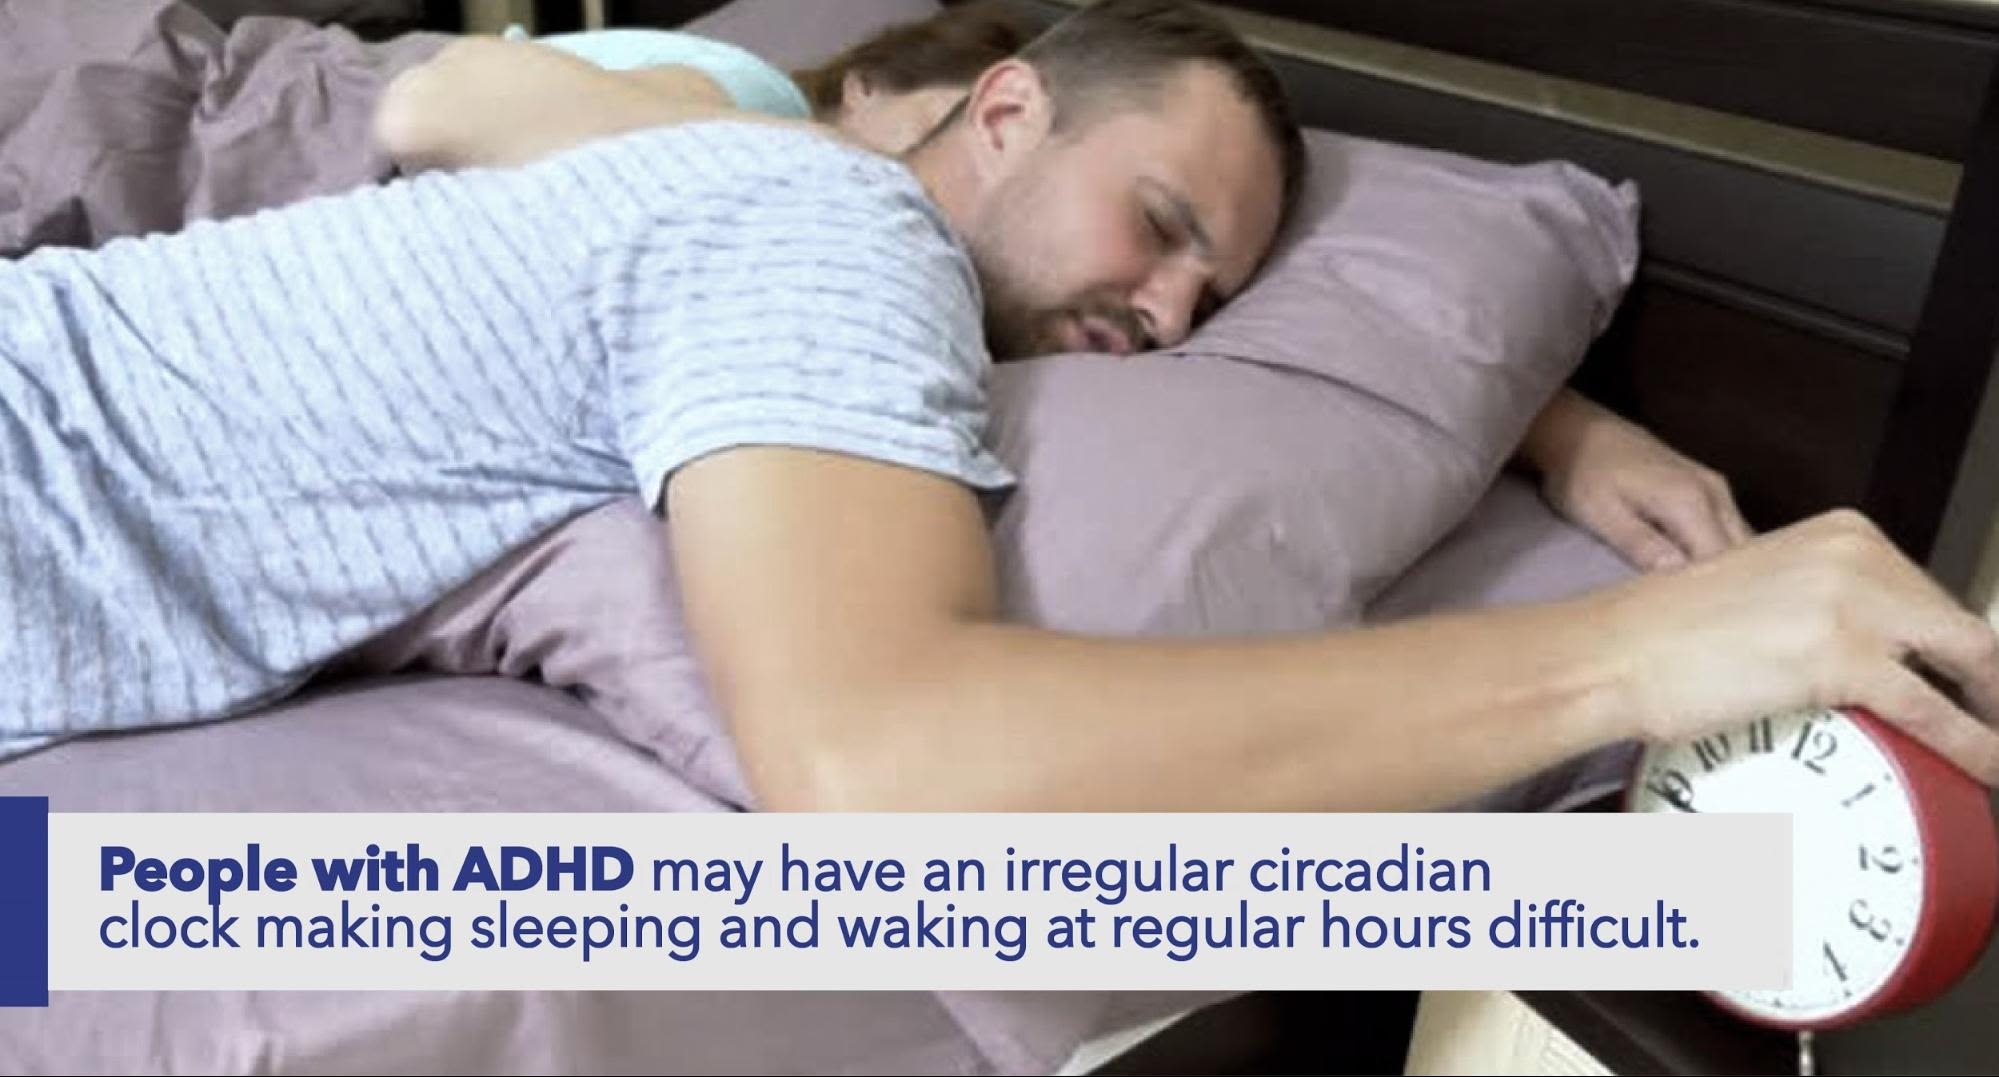 People with ADHD may have an irregular circadian clock making sleeping and waking at regular hours difficult.